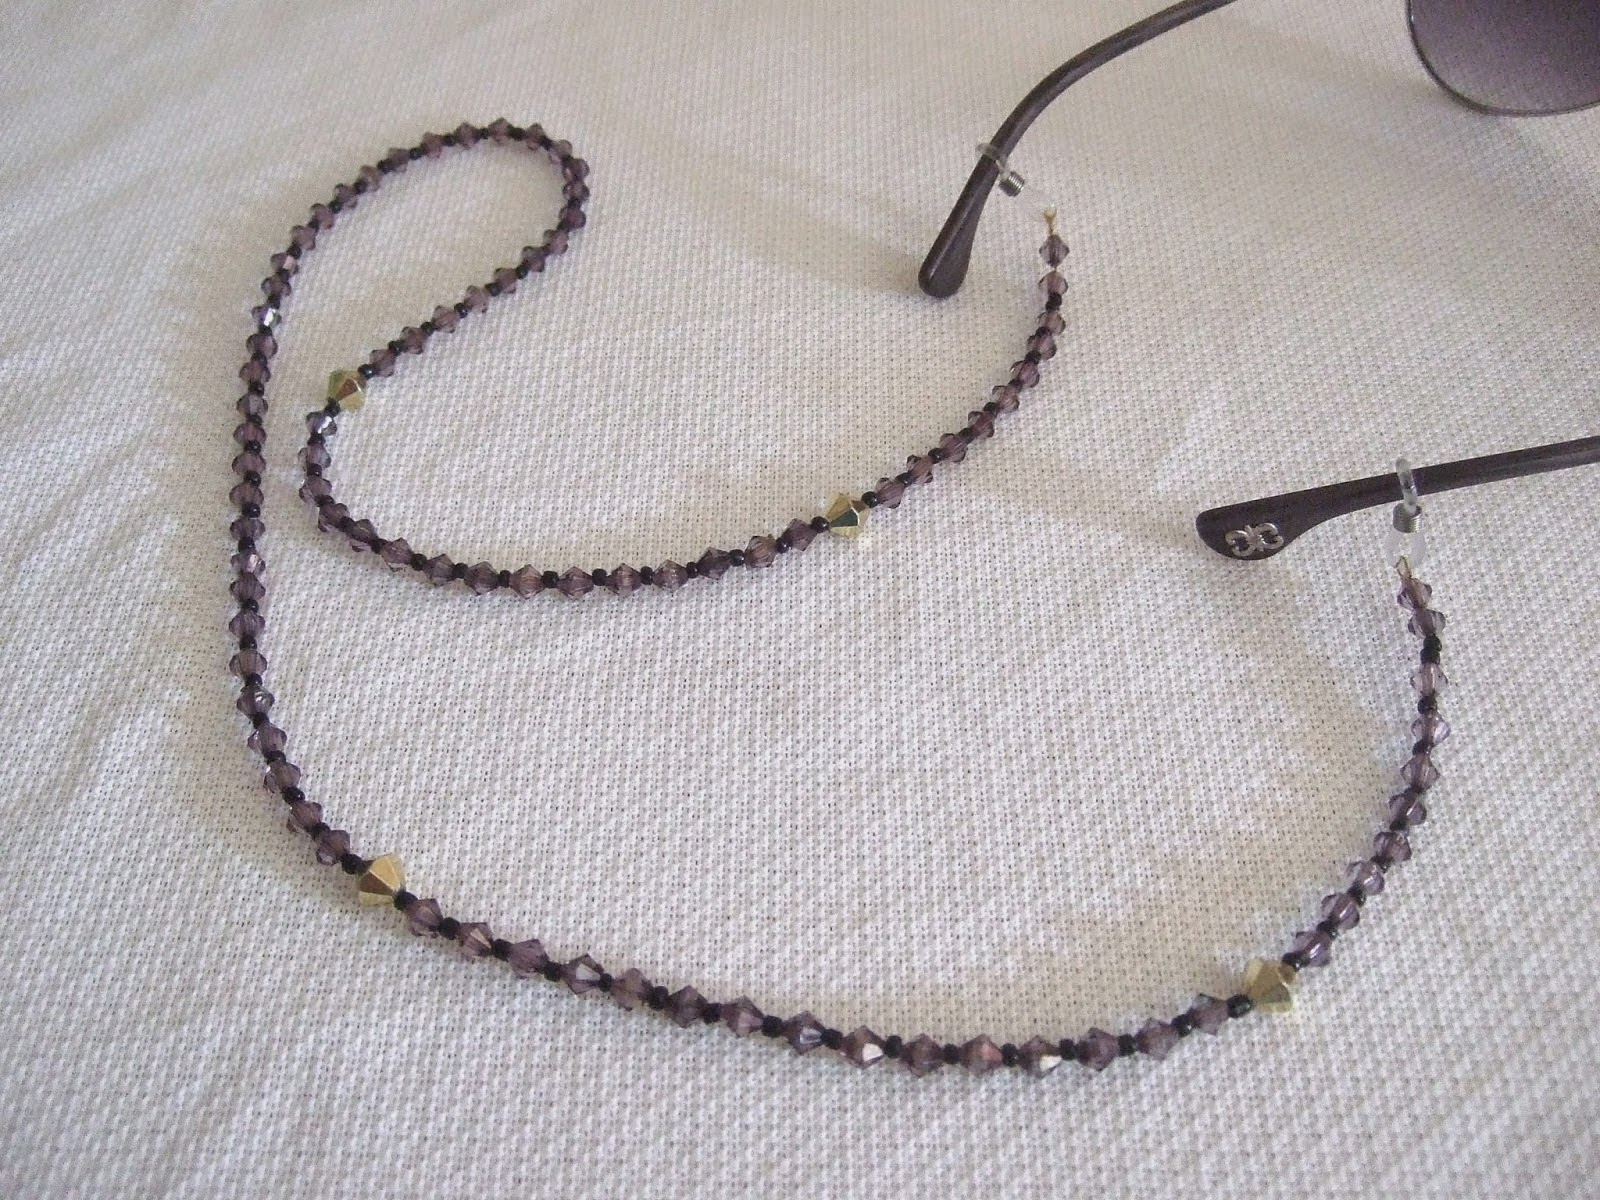 finished eyeglass lanyard strap